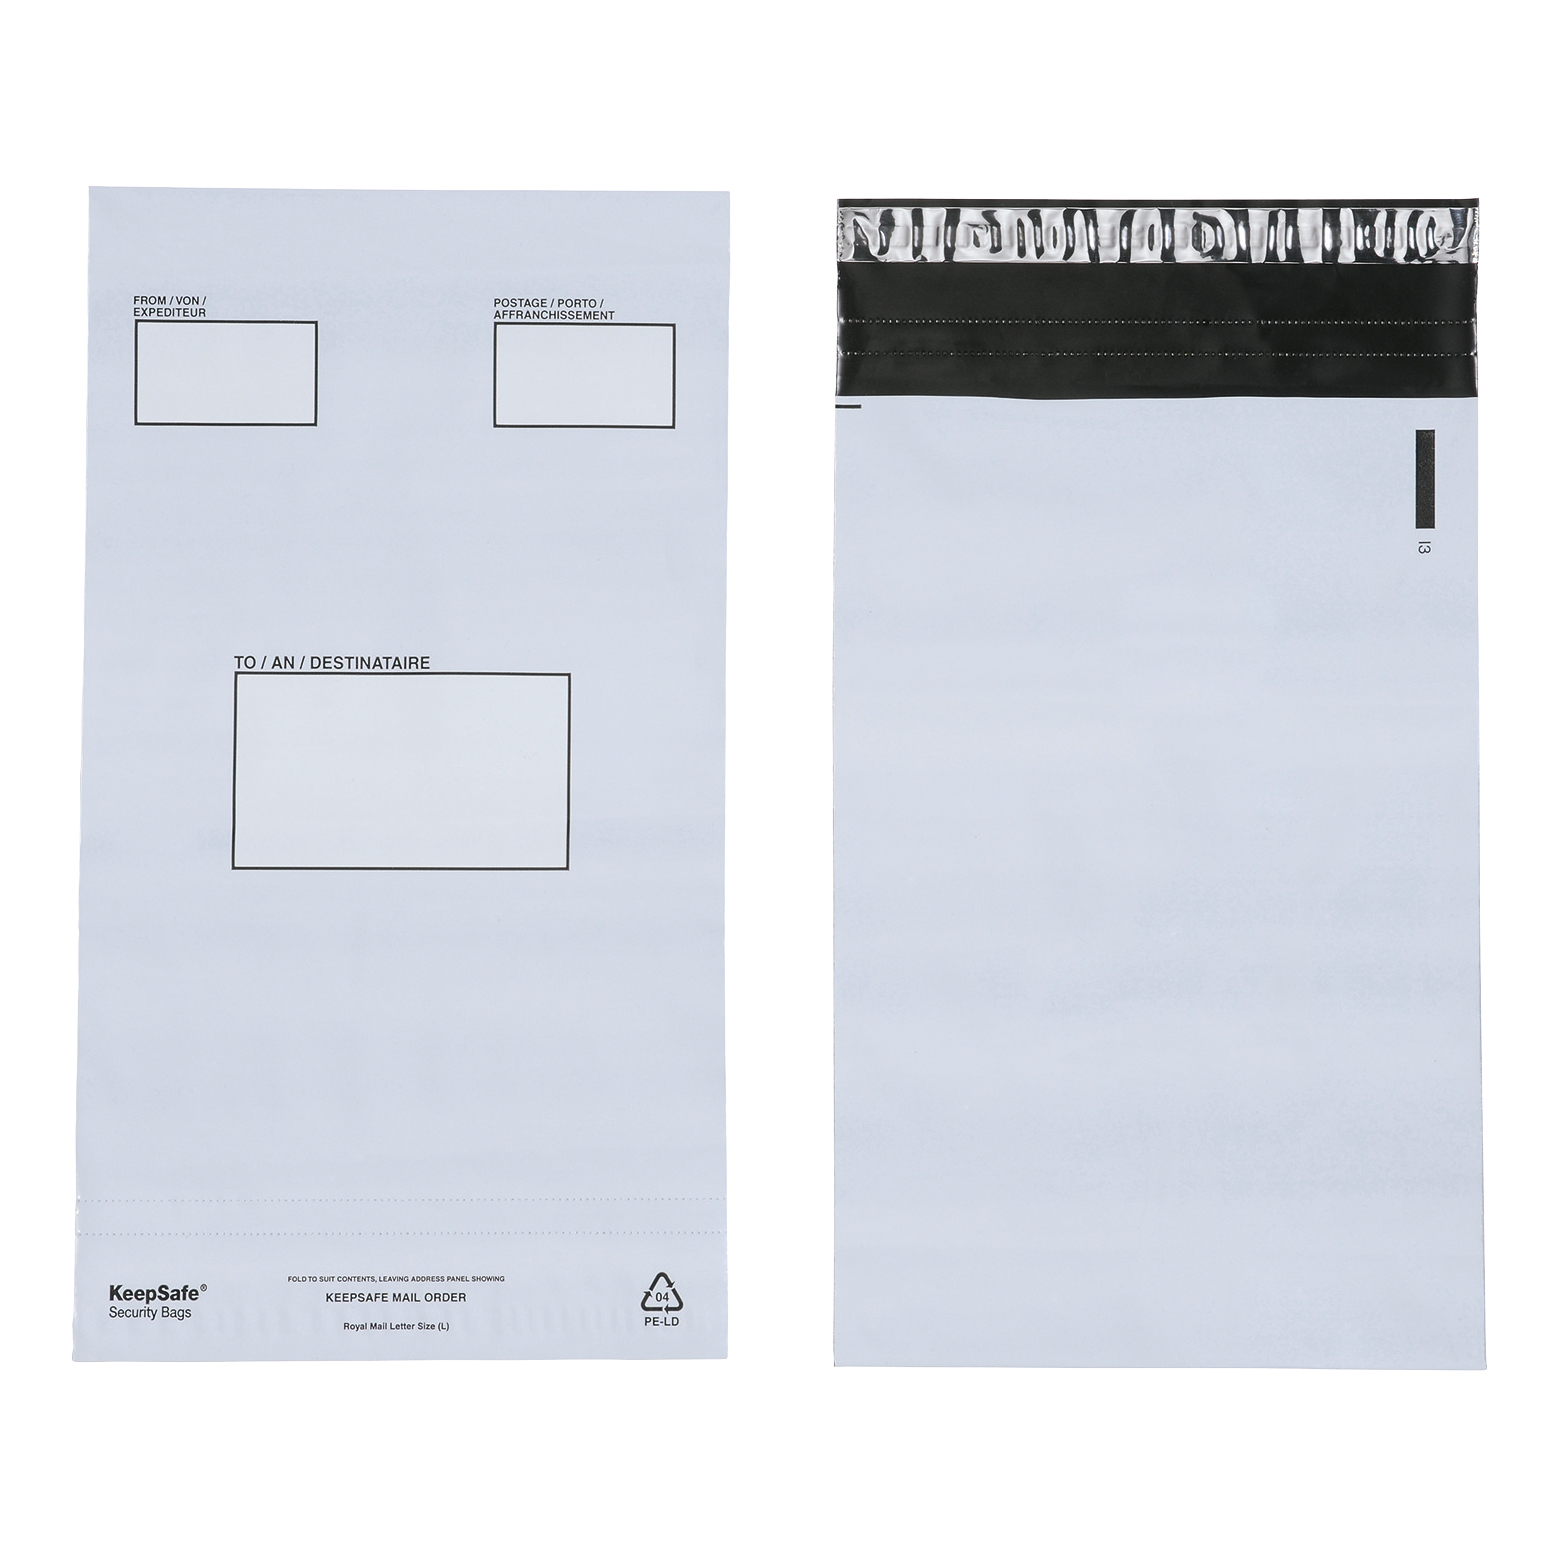 Polythene Envelopes Keepsafe Envelope Extra Strong Polythene Opaque C4 W240xH320mm Peel & Seal Ref KSV-MO2 [Box 100]